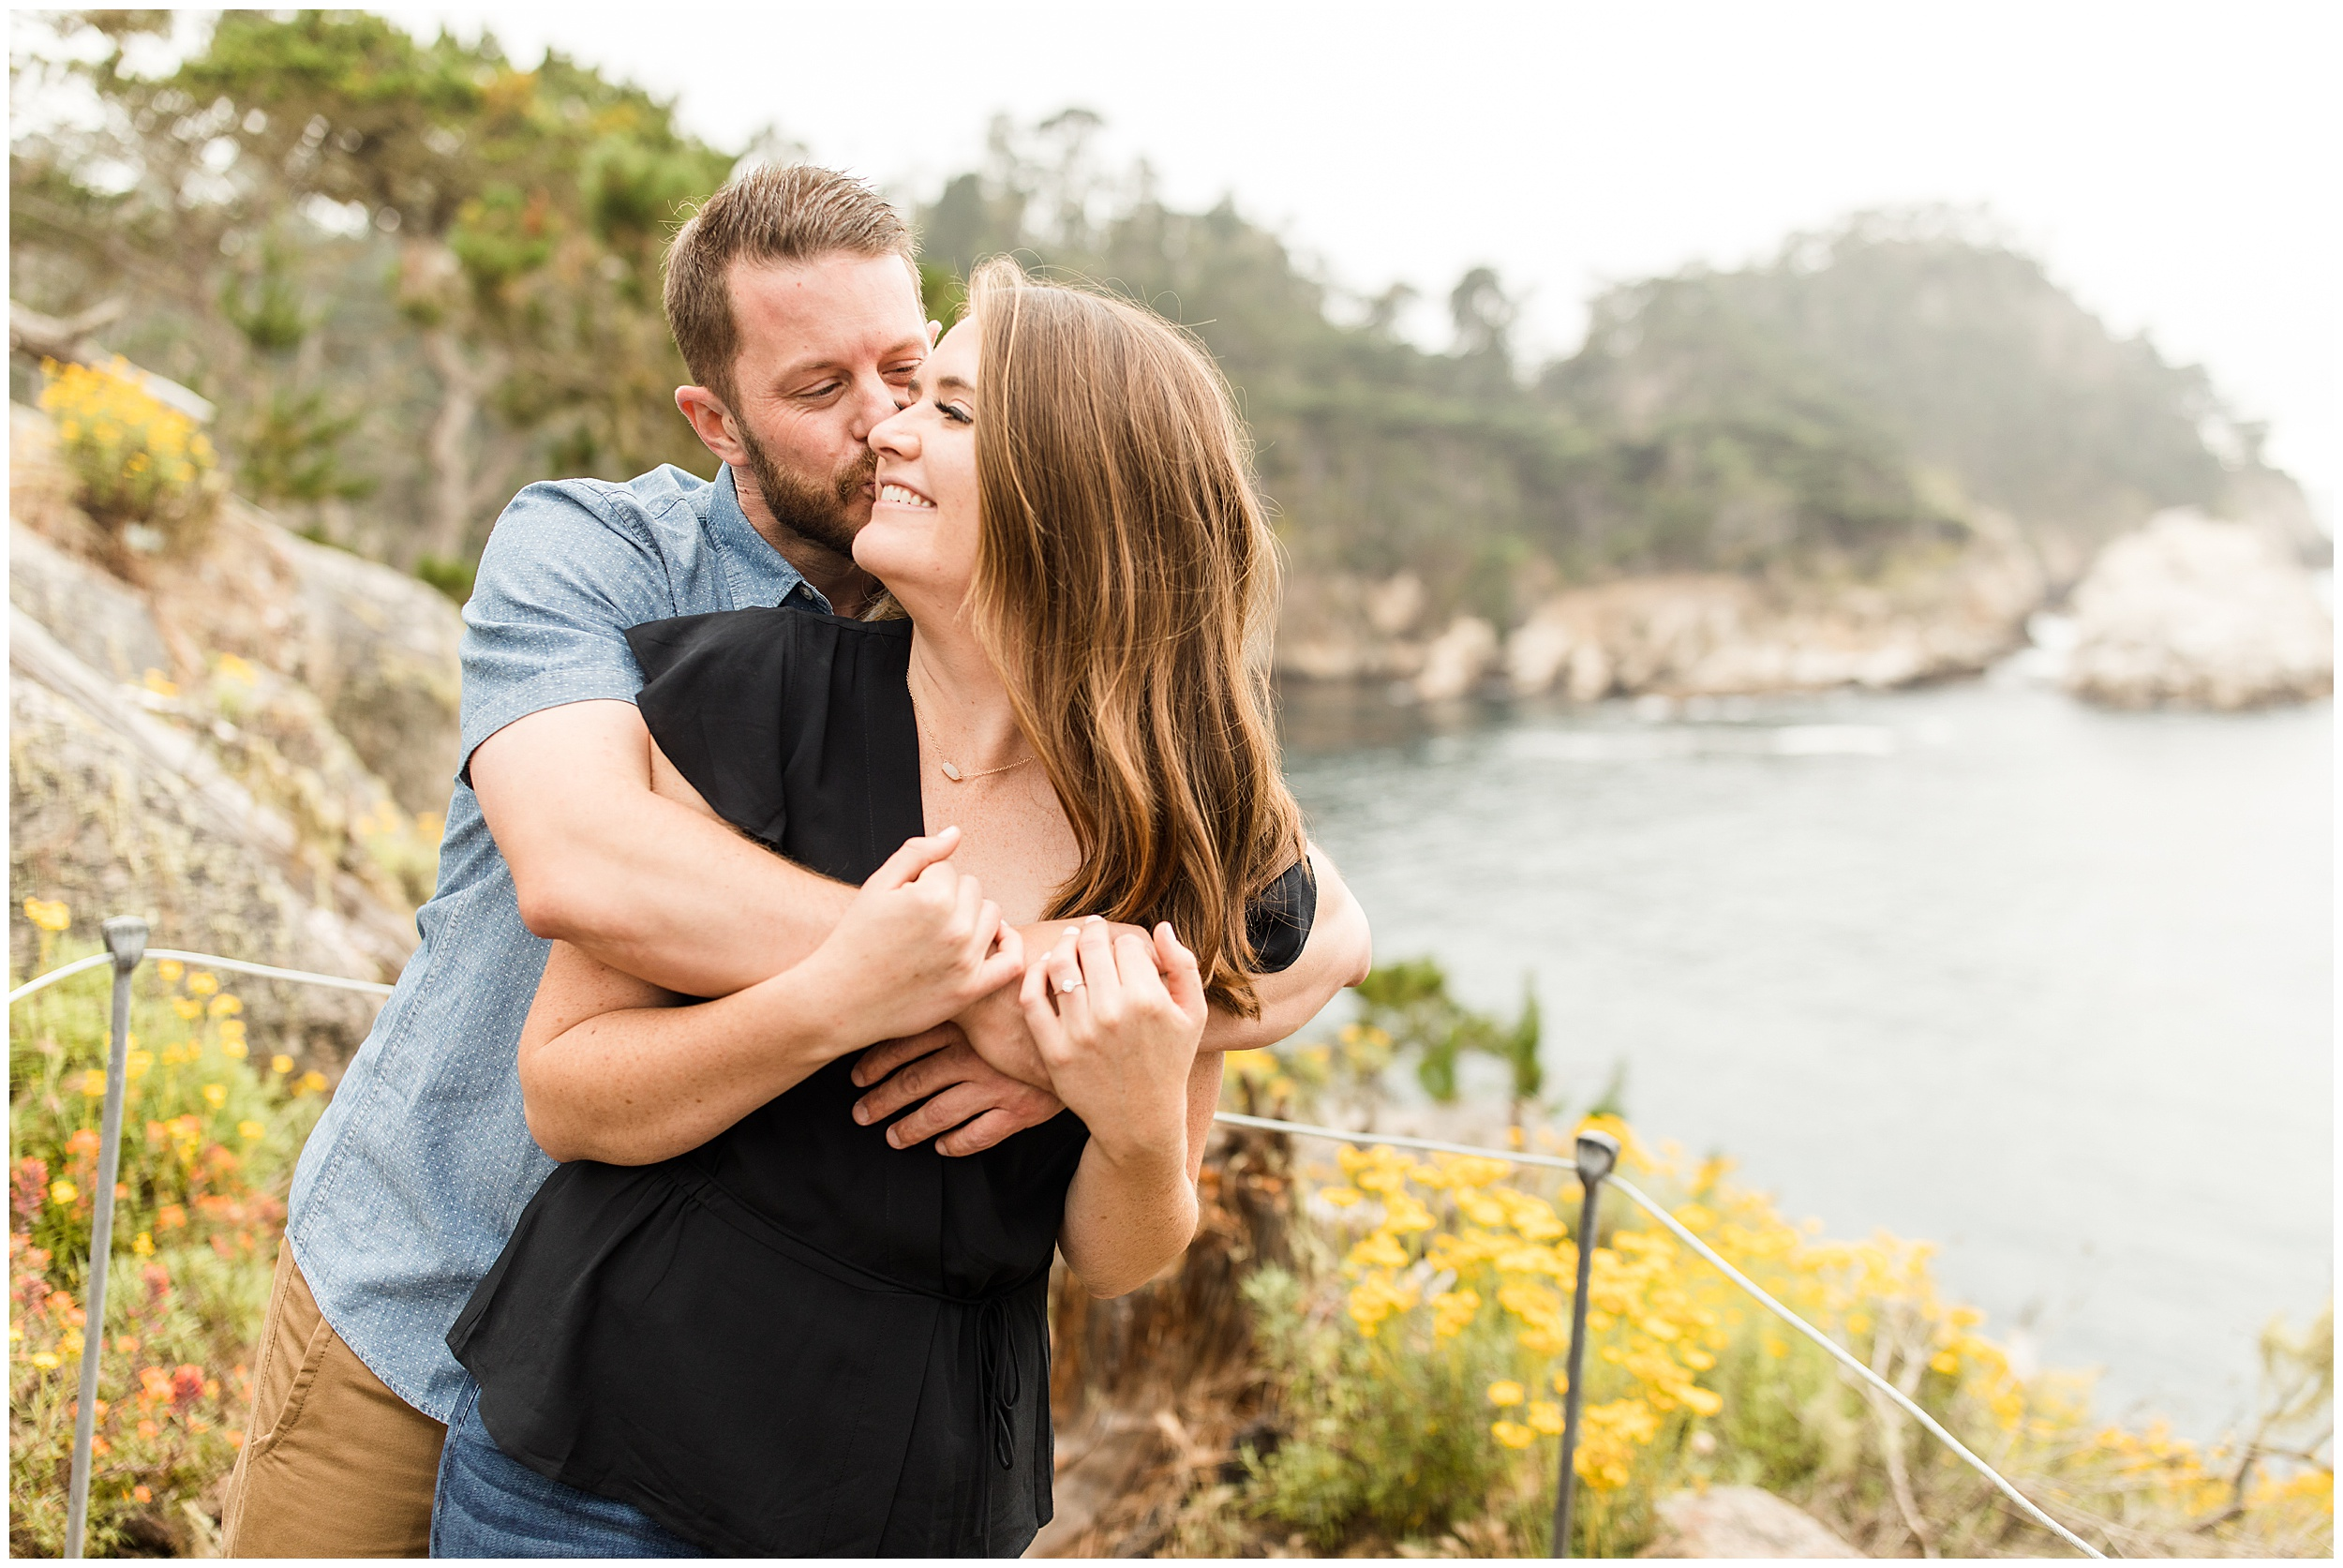 2019 carmel by the sea surprise proposal engagement session wedding photographer angela sue photography_0013.jpg